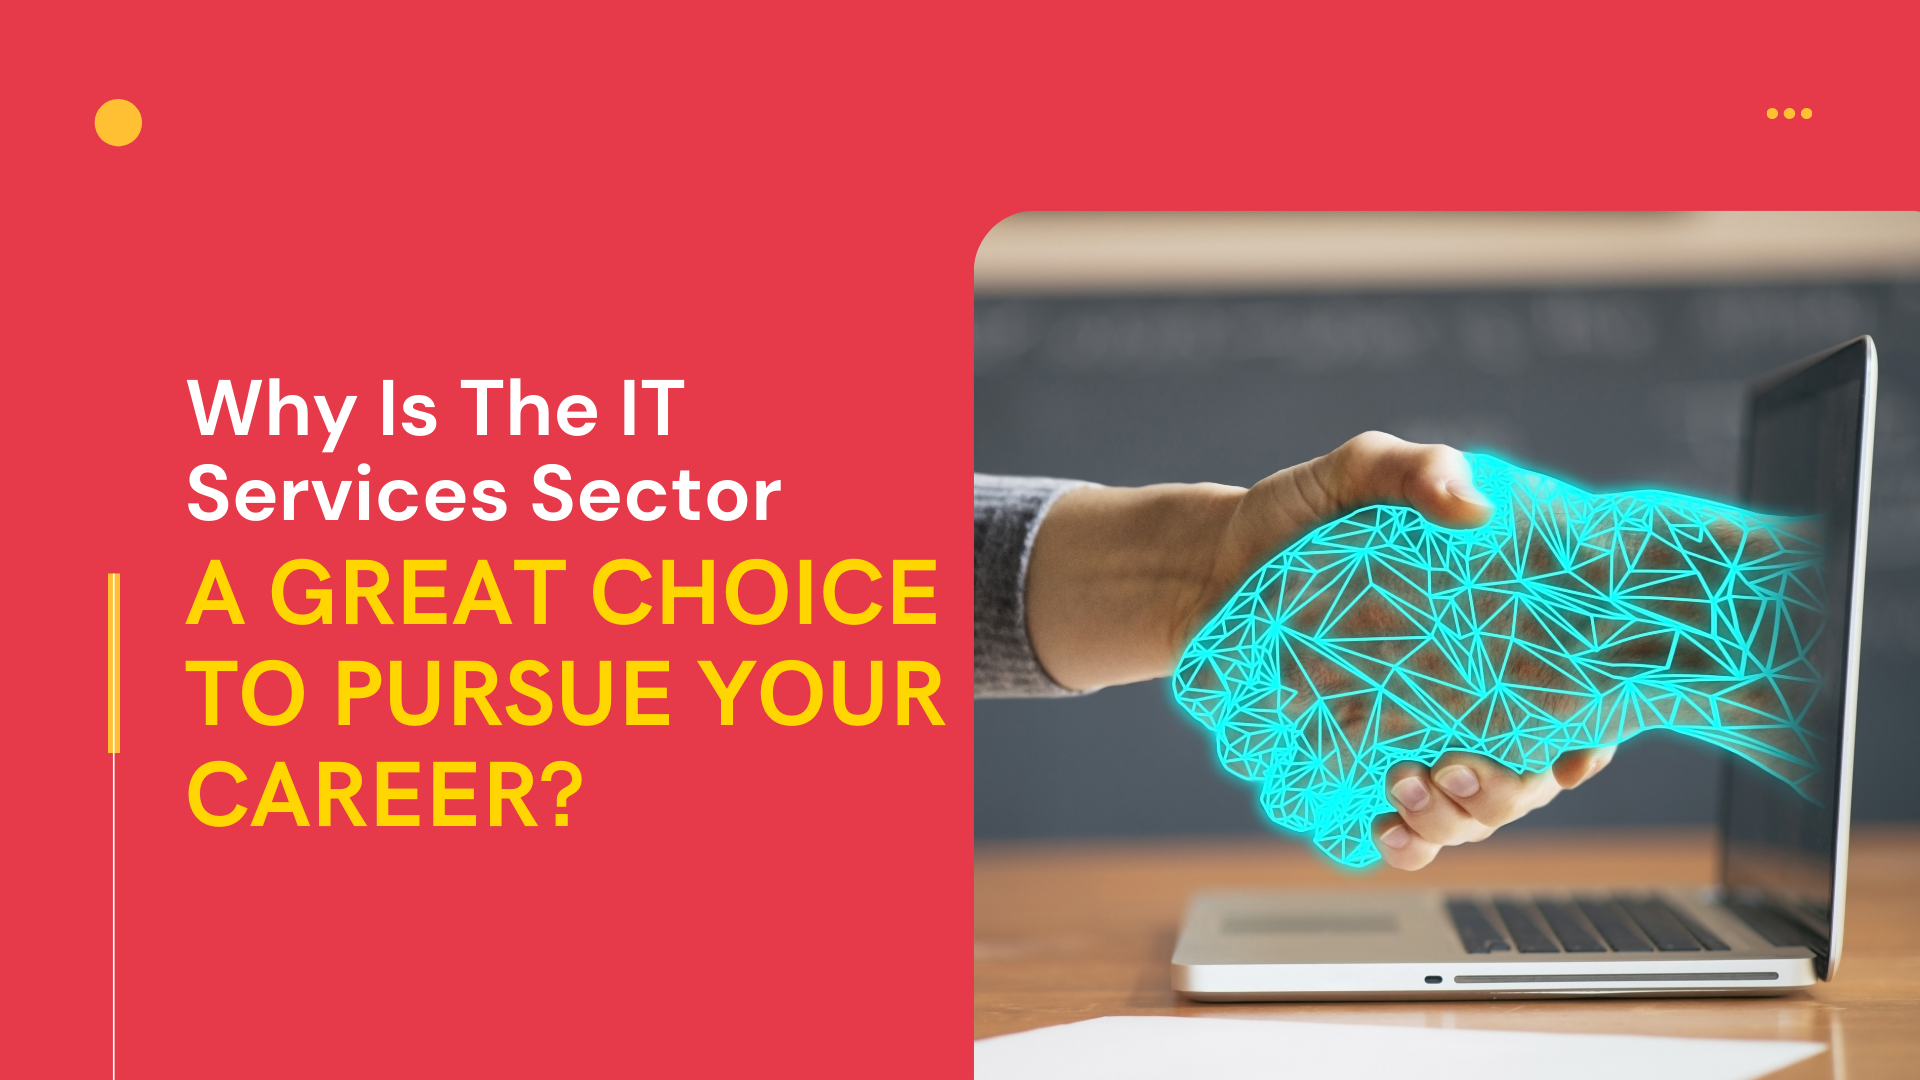 Why Is The IT Services Sector A Great Choice To Pursue Your Career